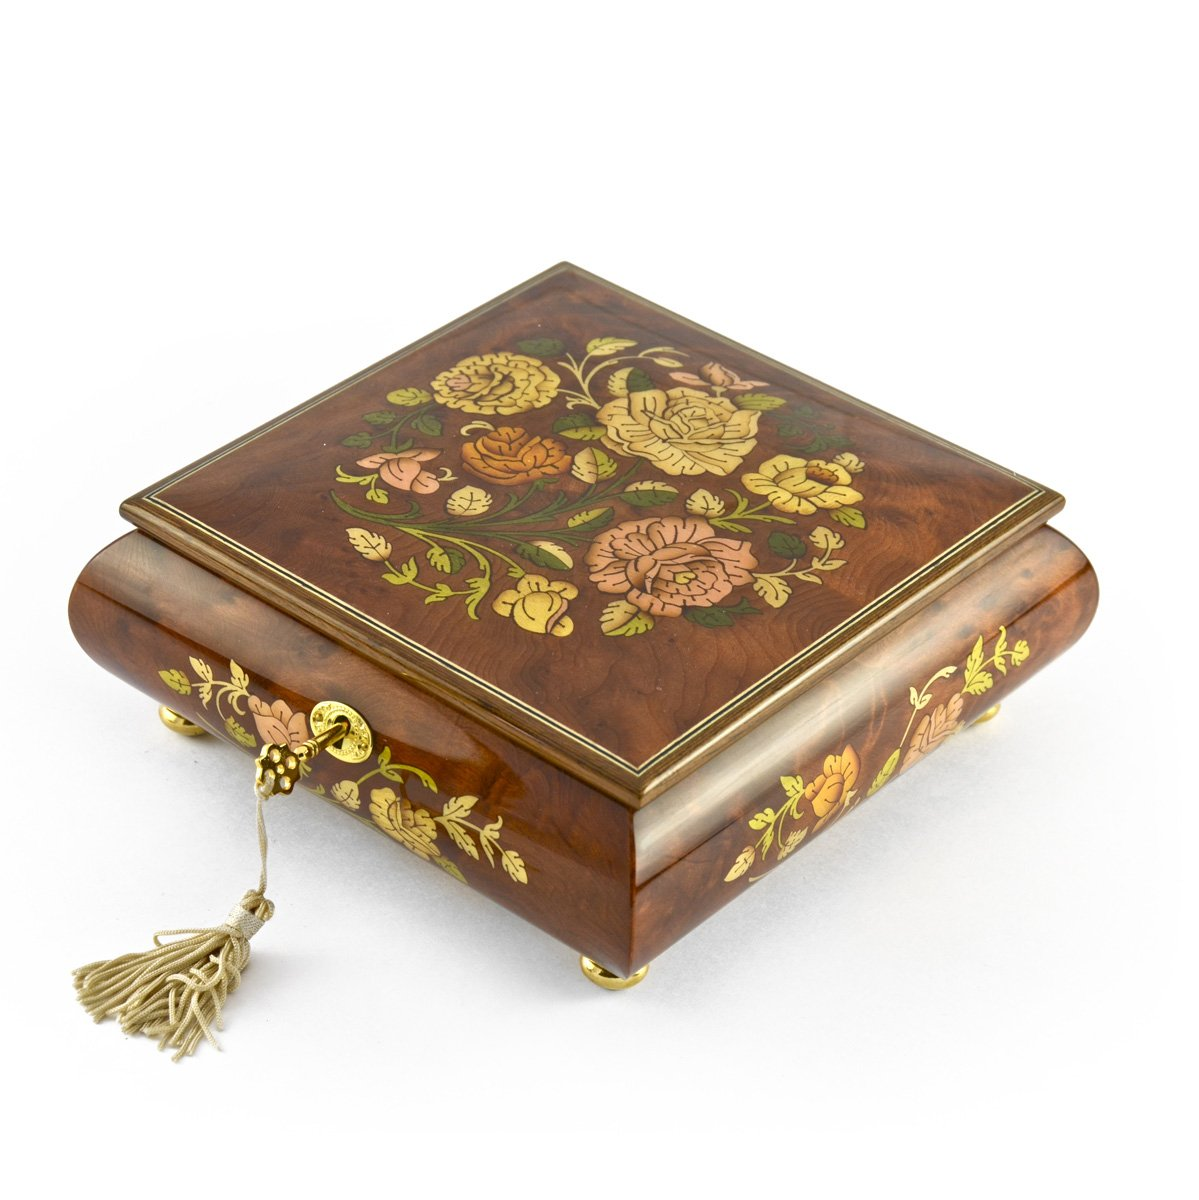 Gorgeous 18 Note Spring Roses Inlay Musical Jewelry Box with Lock and Key - Rock of Ages - Christian Version by MusicBoxAttic